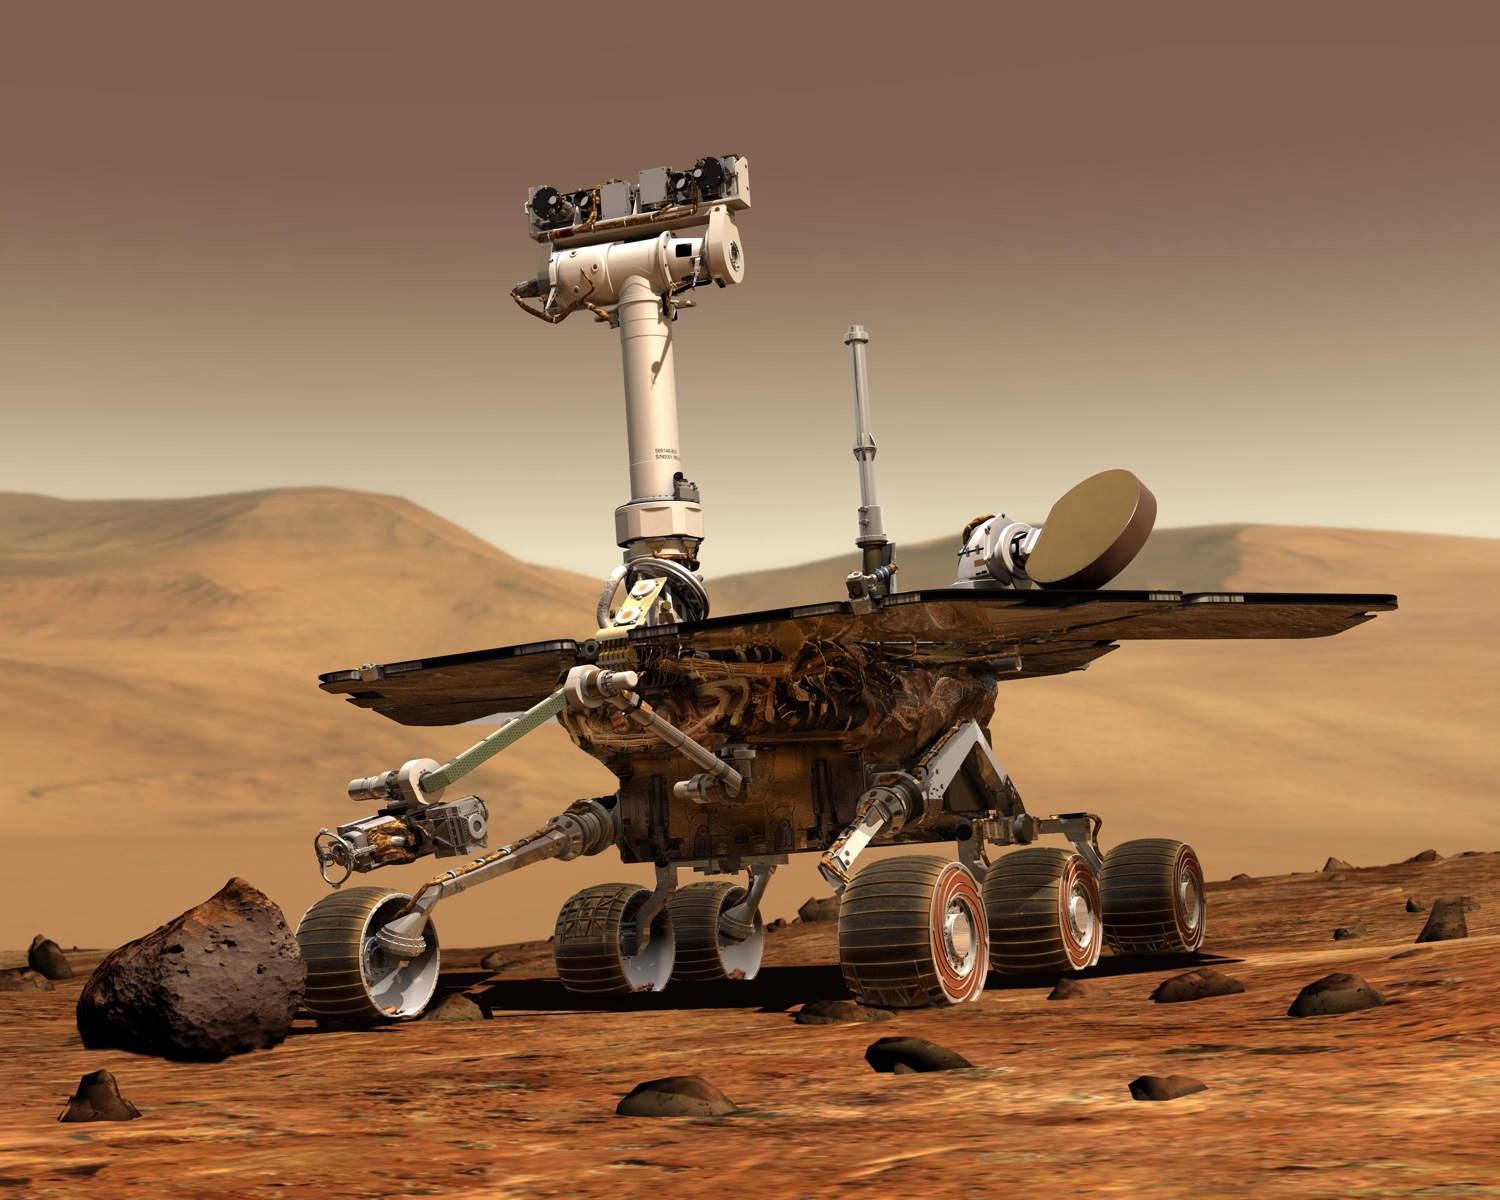 An artist's rendition of the Mars Opportunity rover.